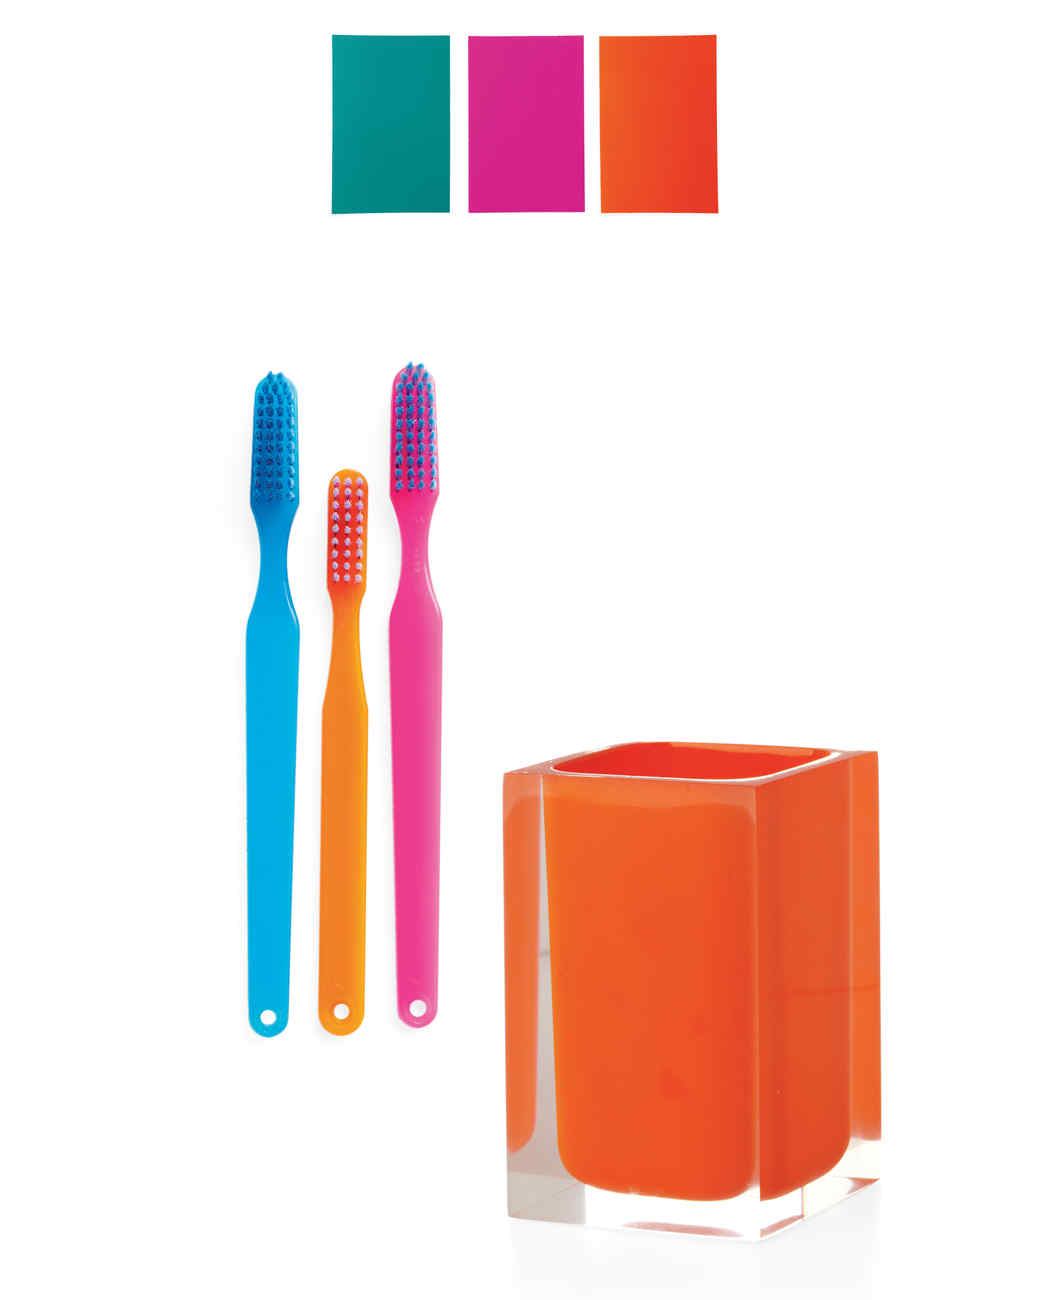 colorblocked-toothbrushes-mld108526.jpg